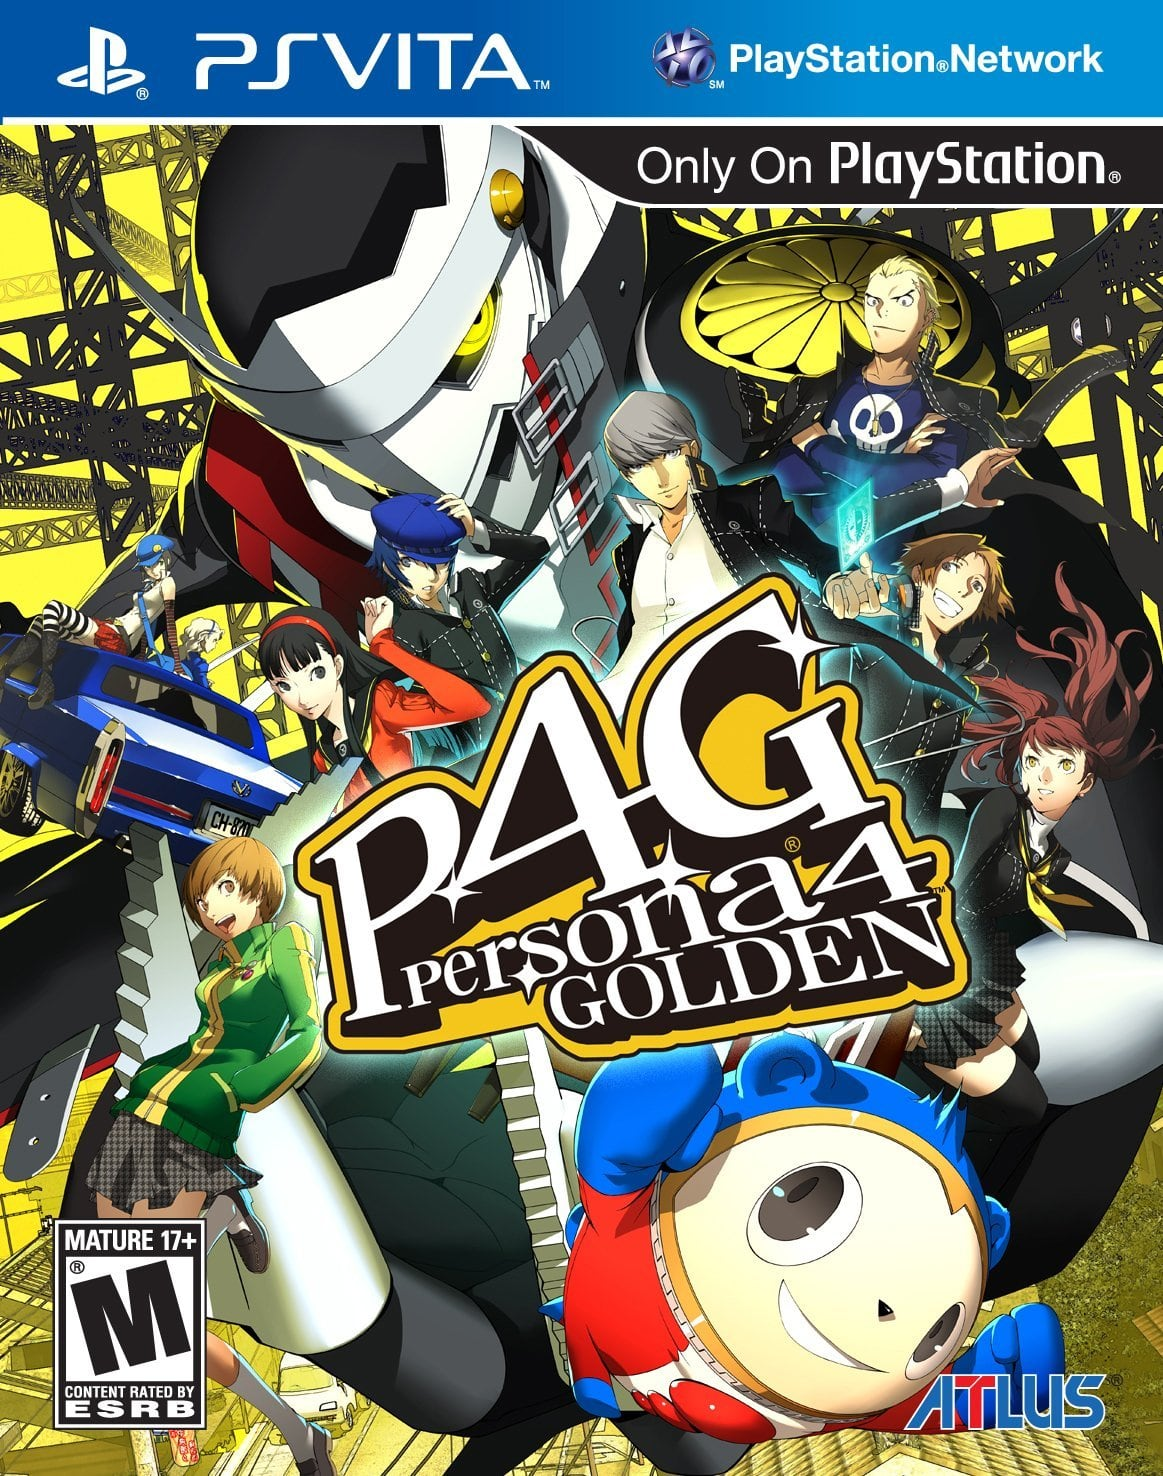 Persona 4 Golden - PS Vita [Digital Code] $9.90 + Free Shipping from Amazon